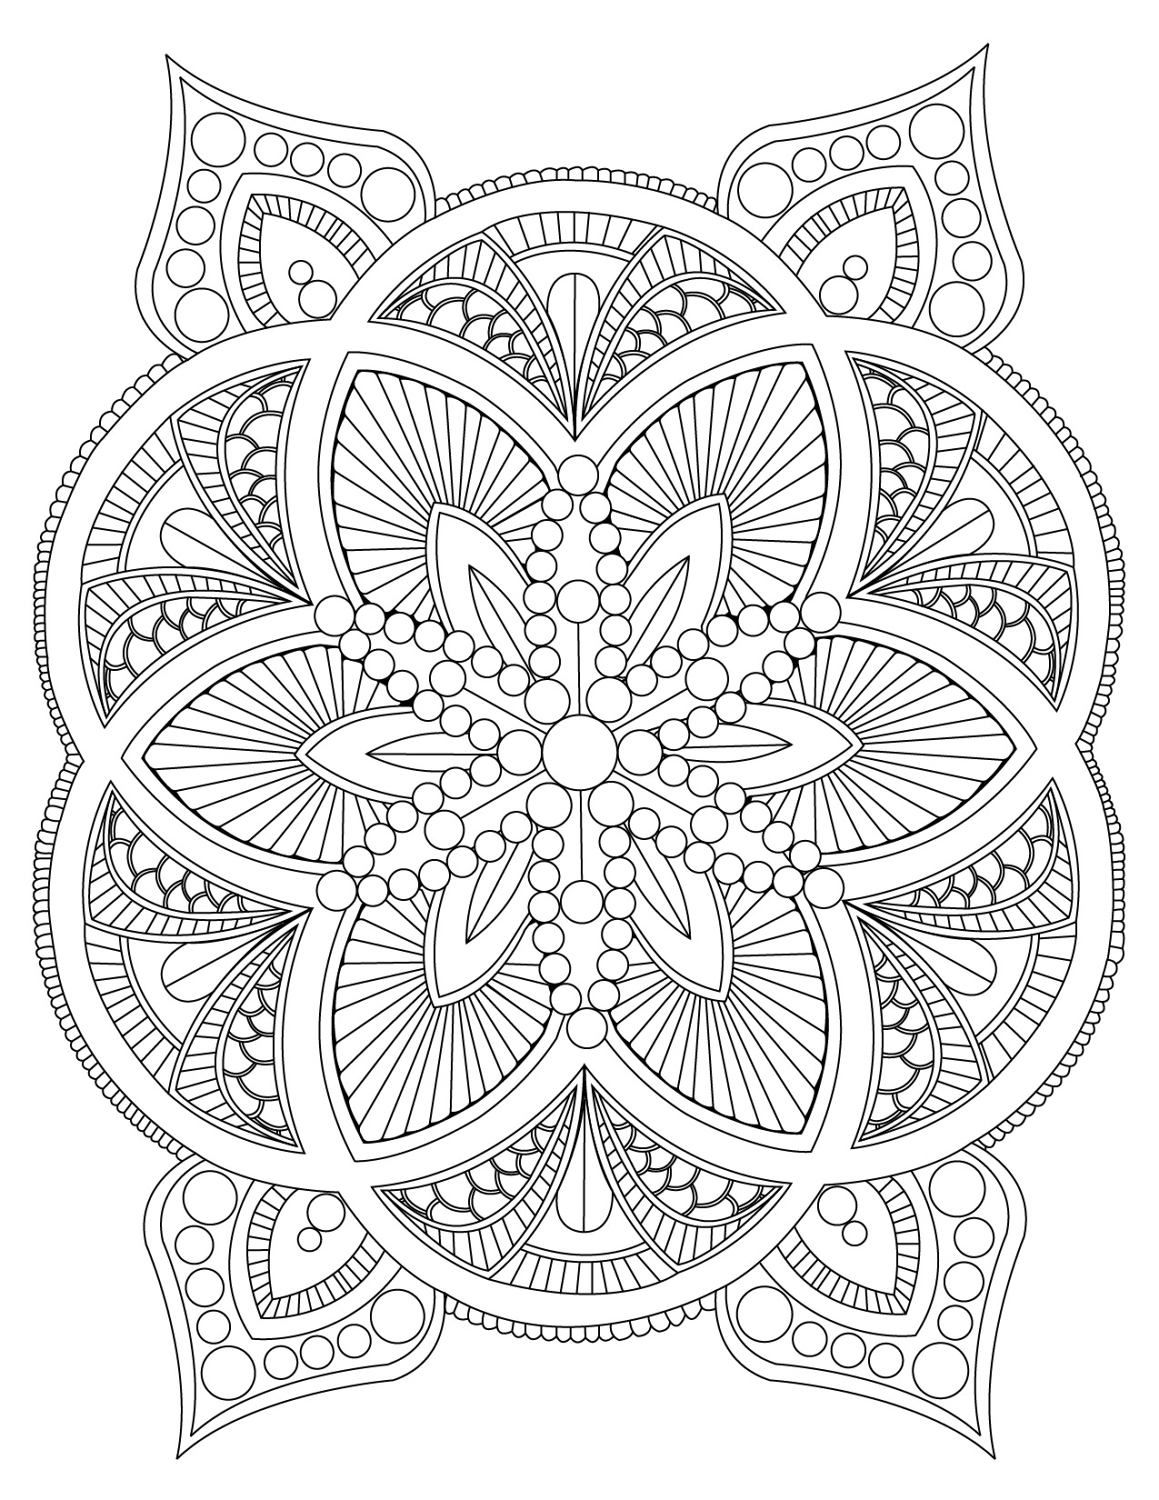 Abstract Mandala Coloring Page For Adults Digital Download Mandala Coloring Pages Abstract Coloring Pages Coloring Pages